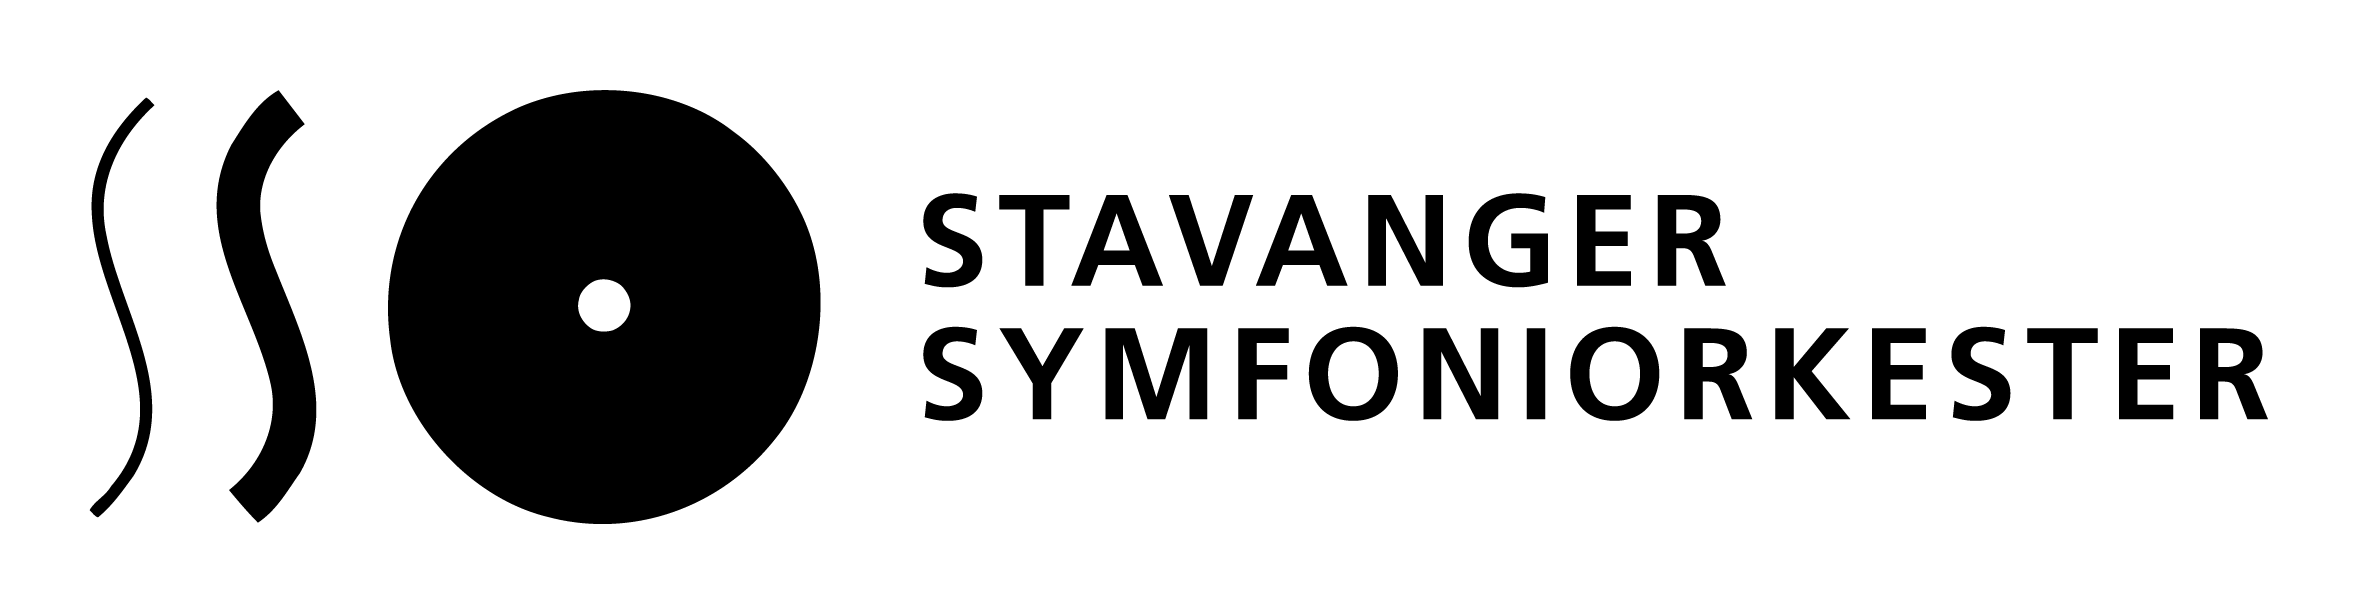 SSO_LOGO_Black_horizontal.png